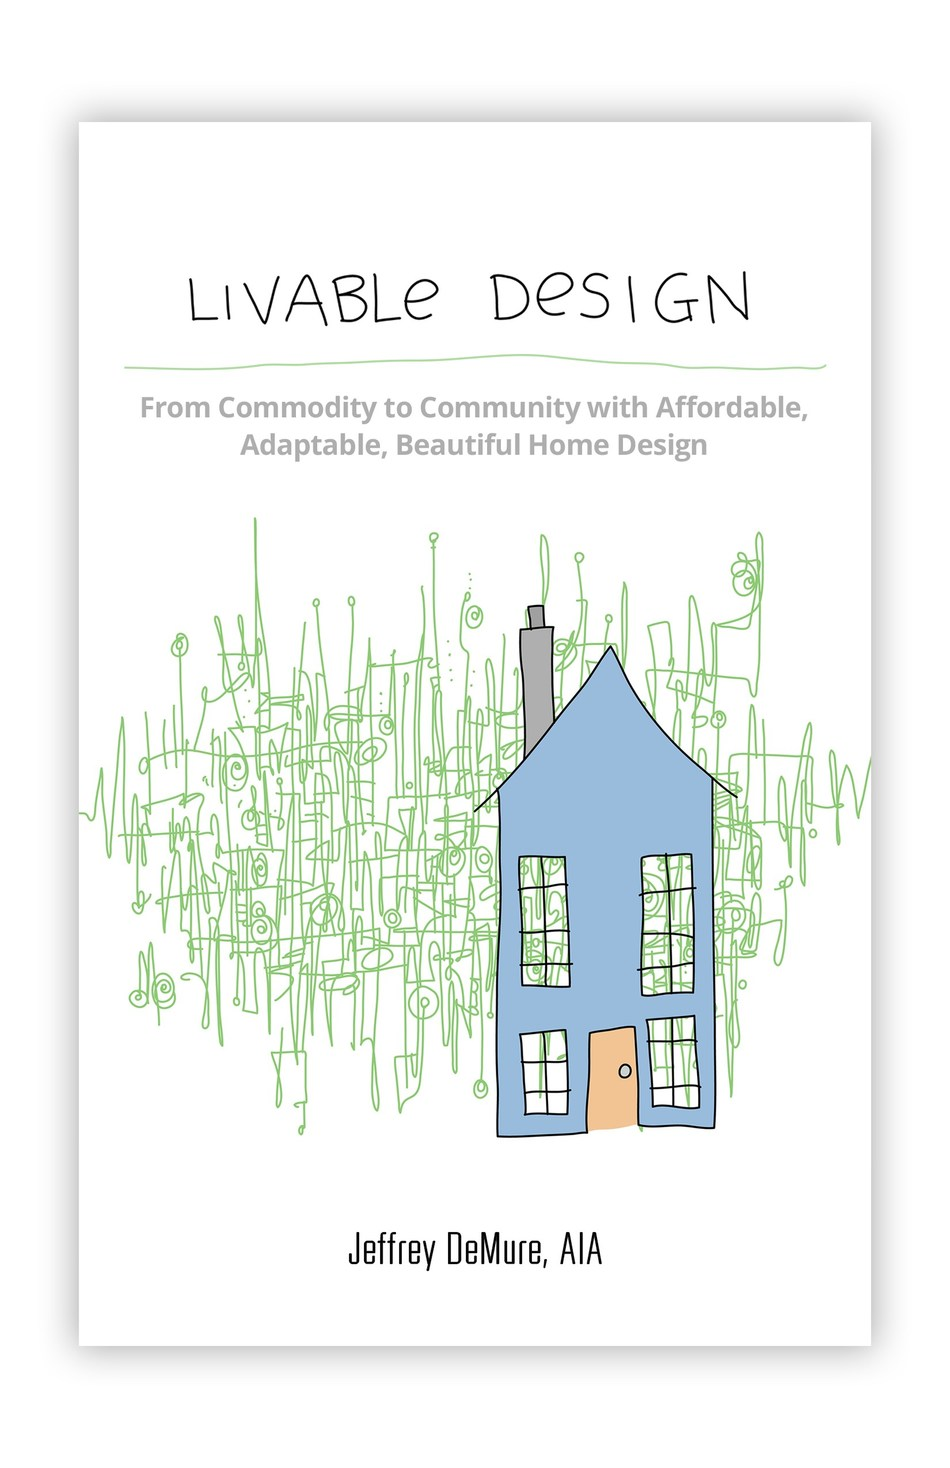 Livable Design by Jeffrey DeMure, AIA